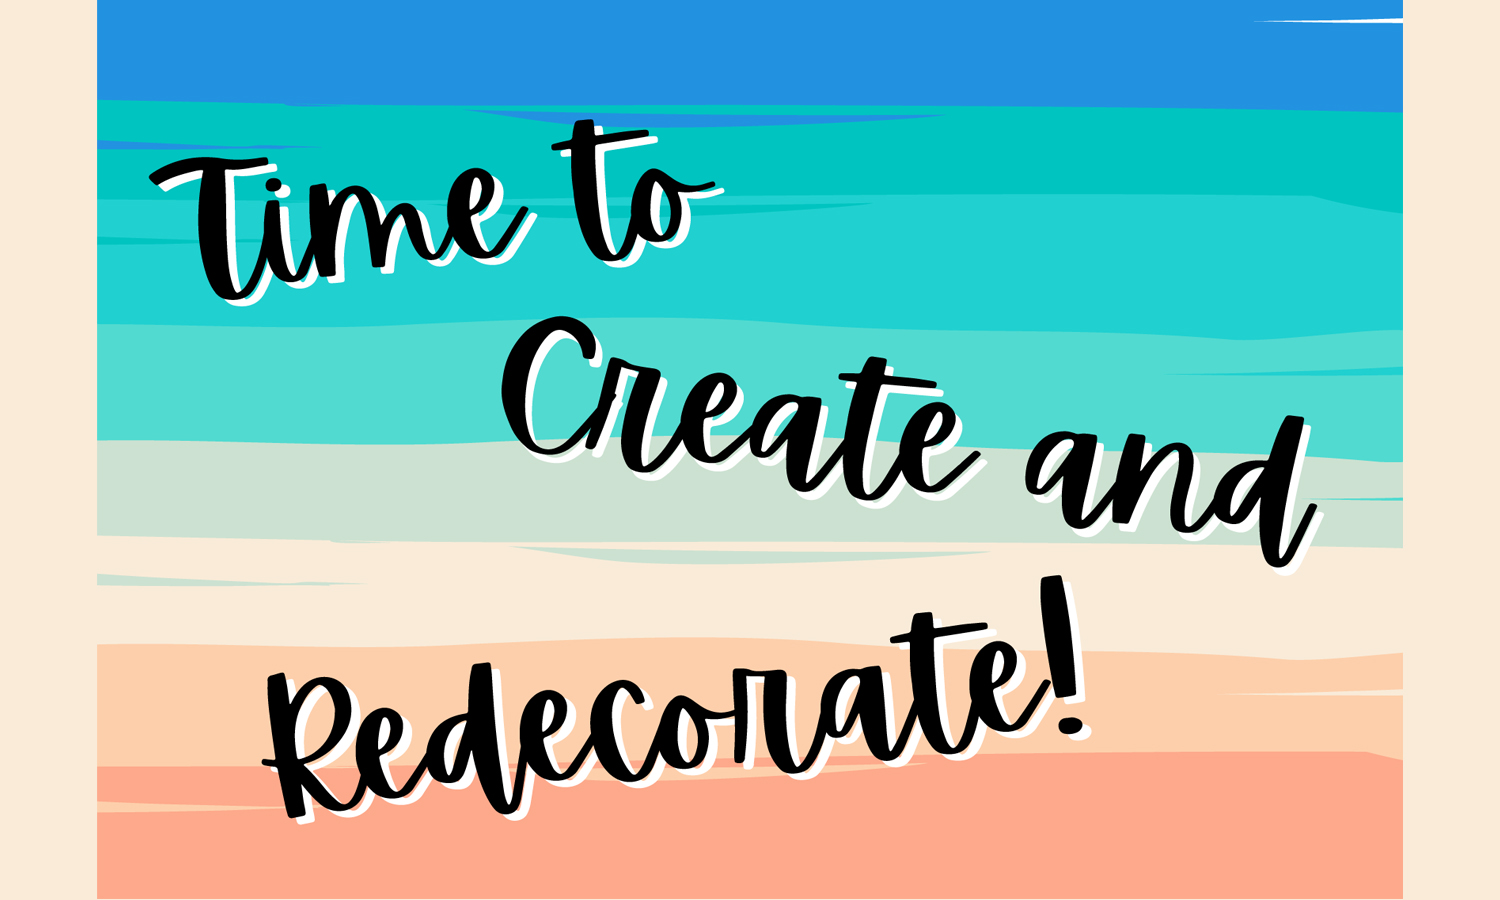 Time to Create and Redecorate!